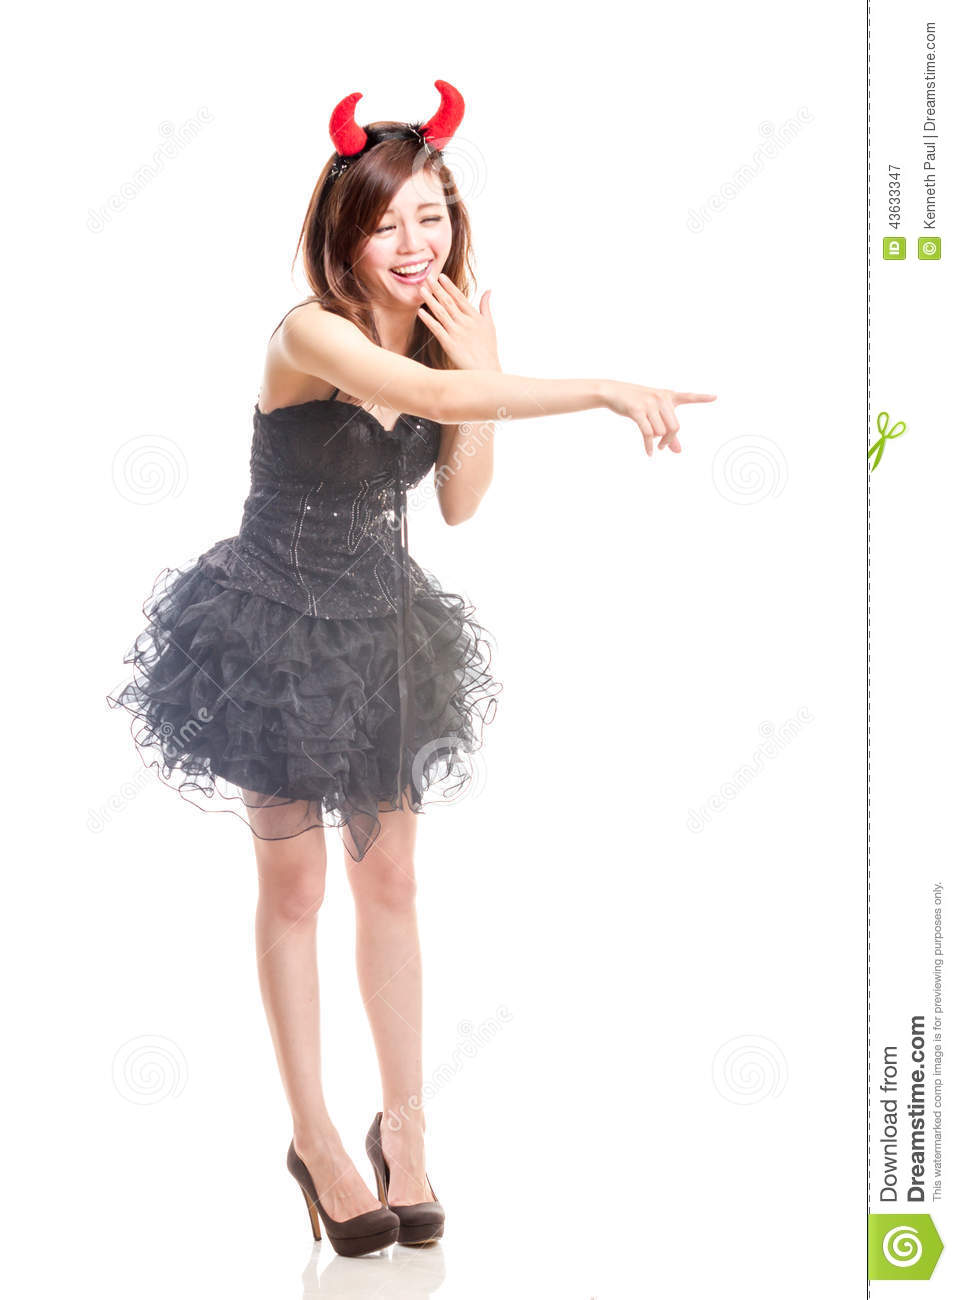 Download Chinese Woman In Black Dress And Devil Horns Stock Image - Image of horns  sc 1 st  Dreamstime.com & Chinese Woman In Black Dress And Devil Horns Stock Image - Image of ...